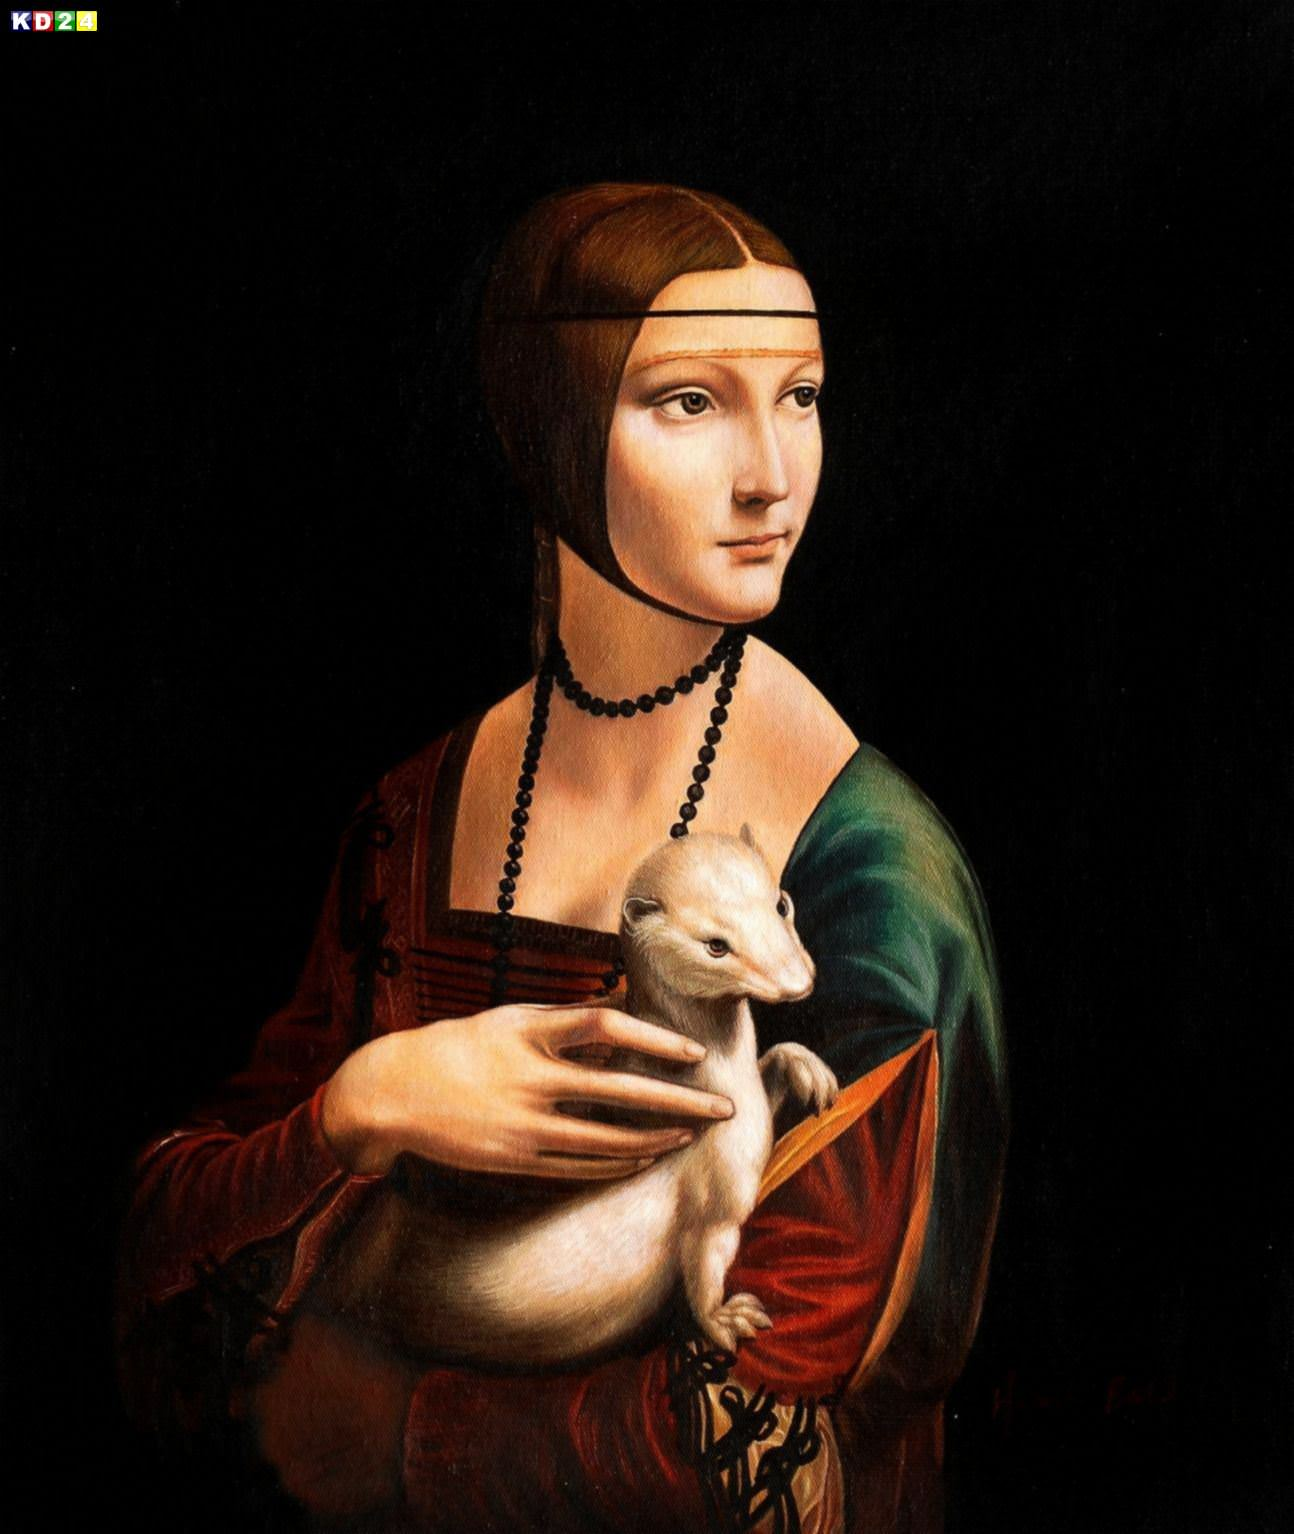 Leonardo da Vinci - Dame mit Hermelin c82958 50x60cm exzellentes lgemlde Museumsqualitt